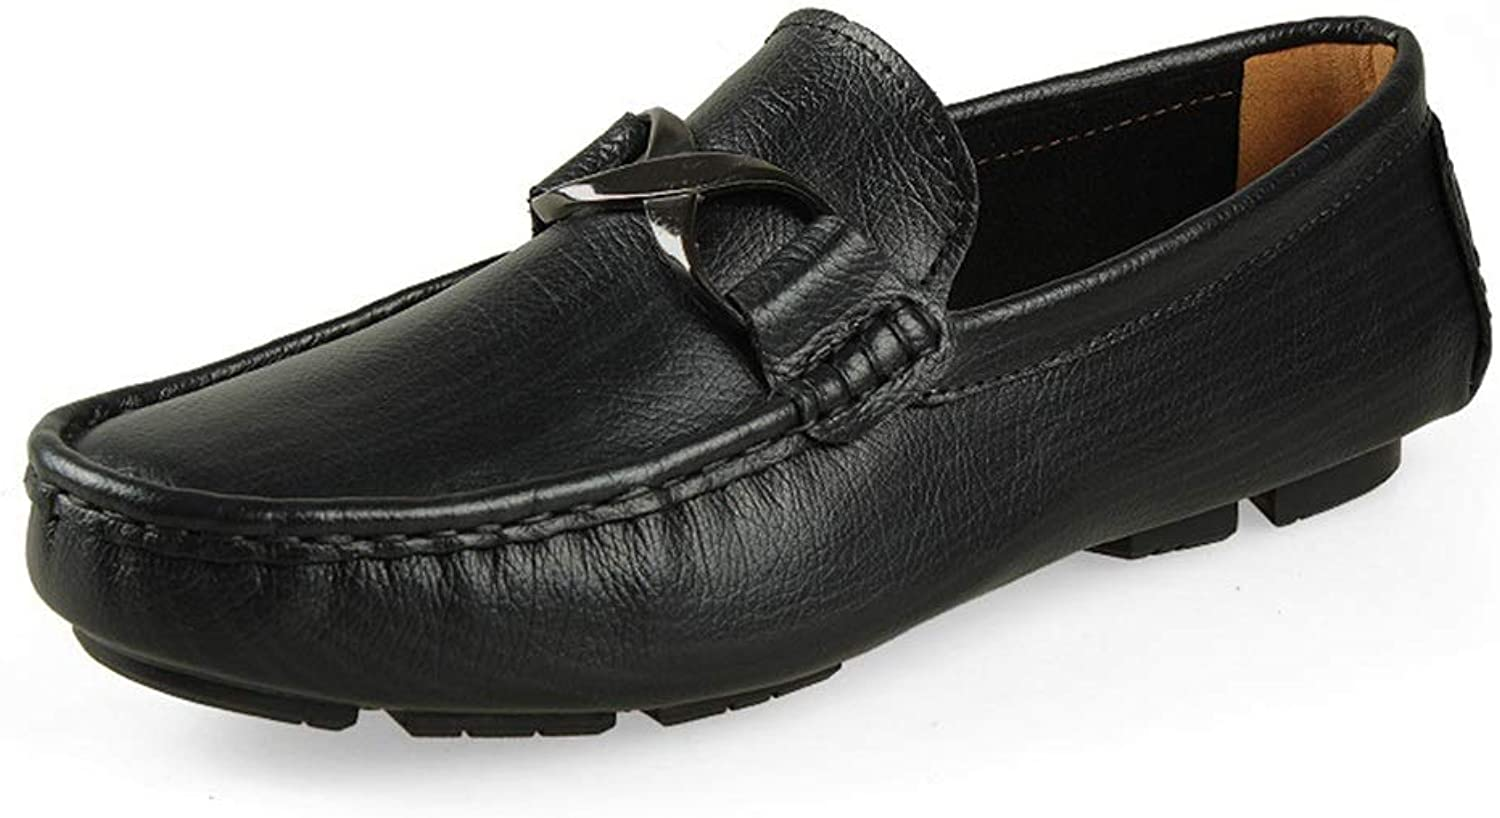 Moccasins Men's Handmade Moccasin-Gommino Leather Low Cut shoes Comfort Flats Business shoes Boat shoes Driving shoes Loafer Flats Casual